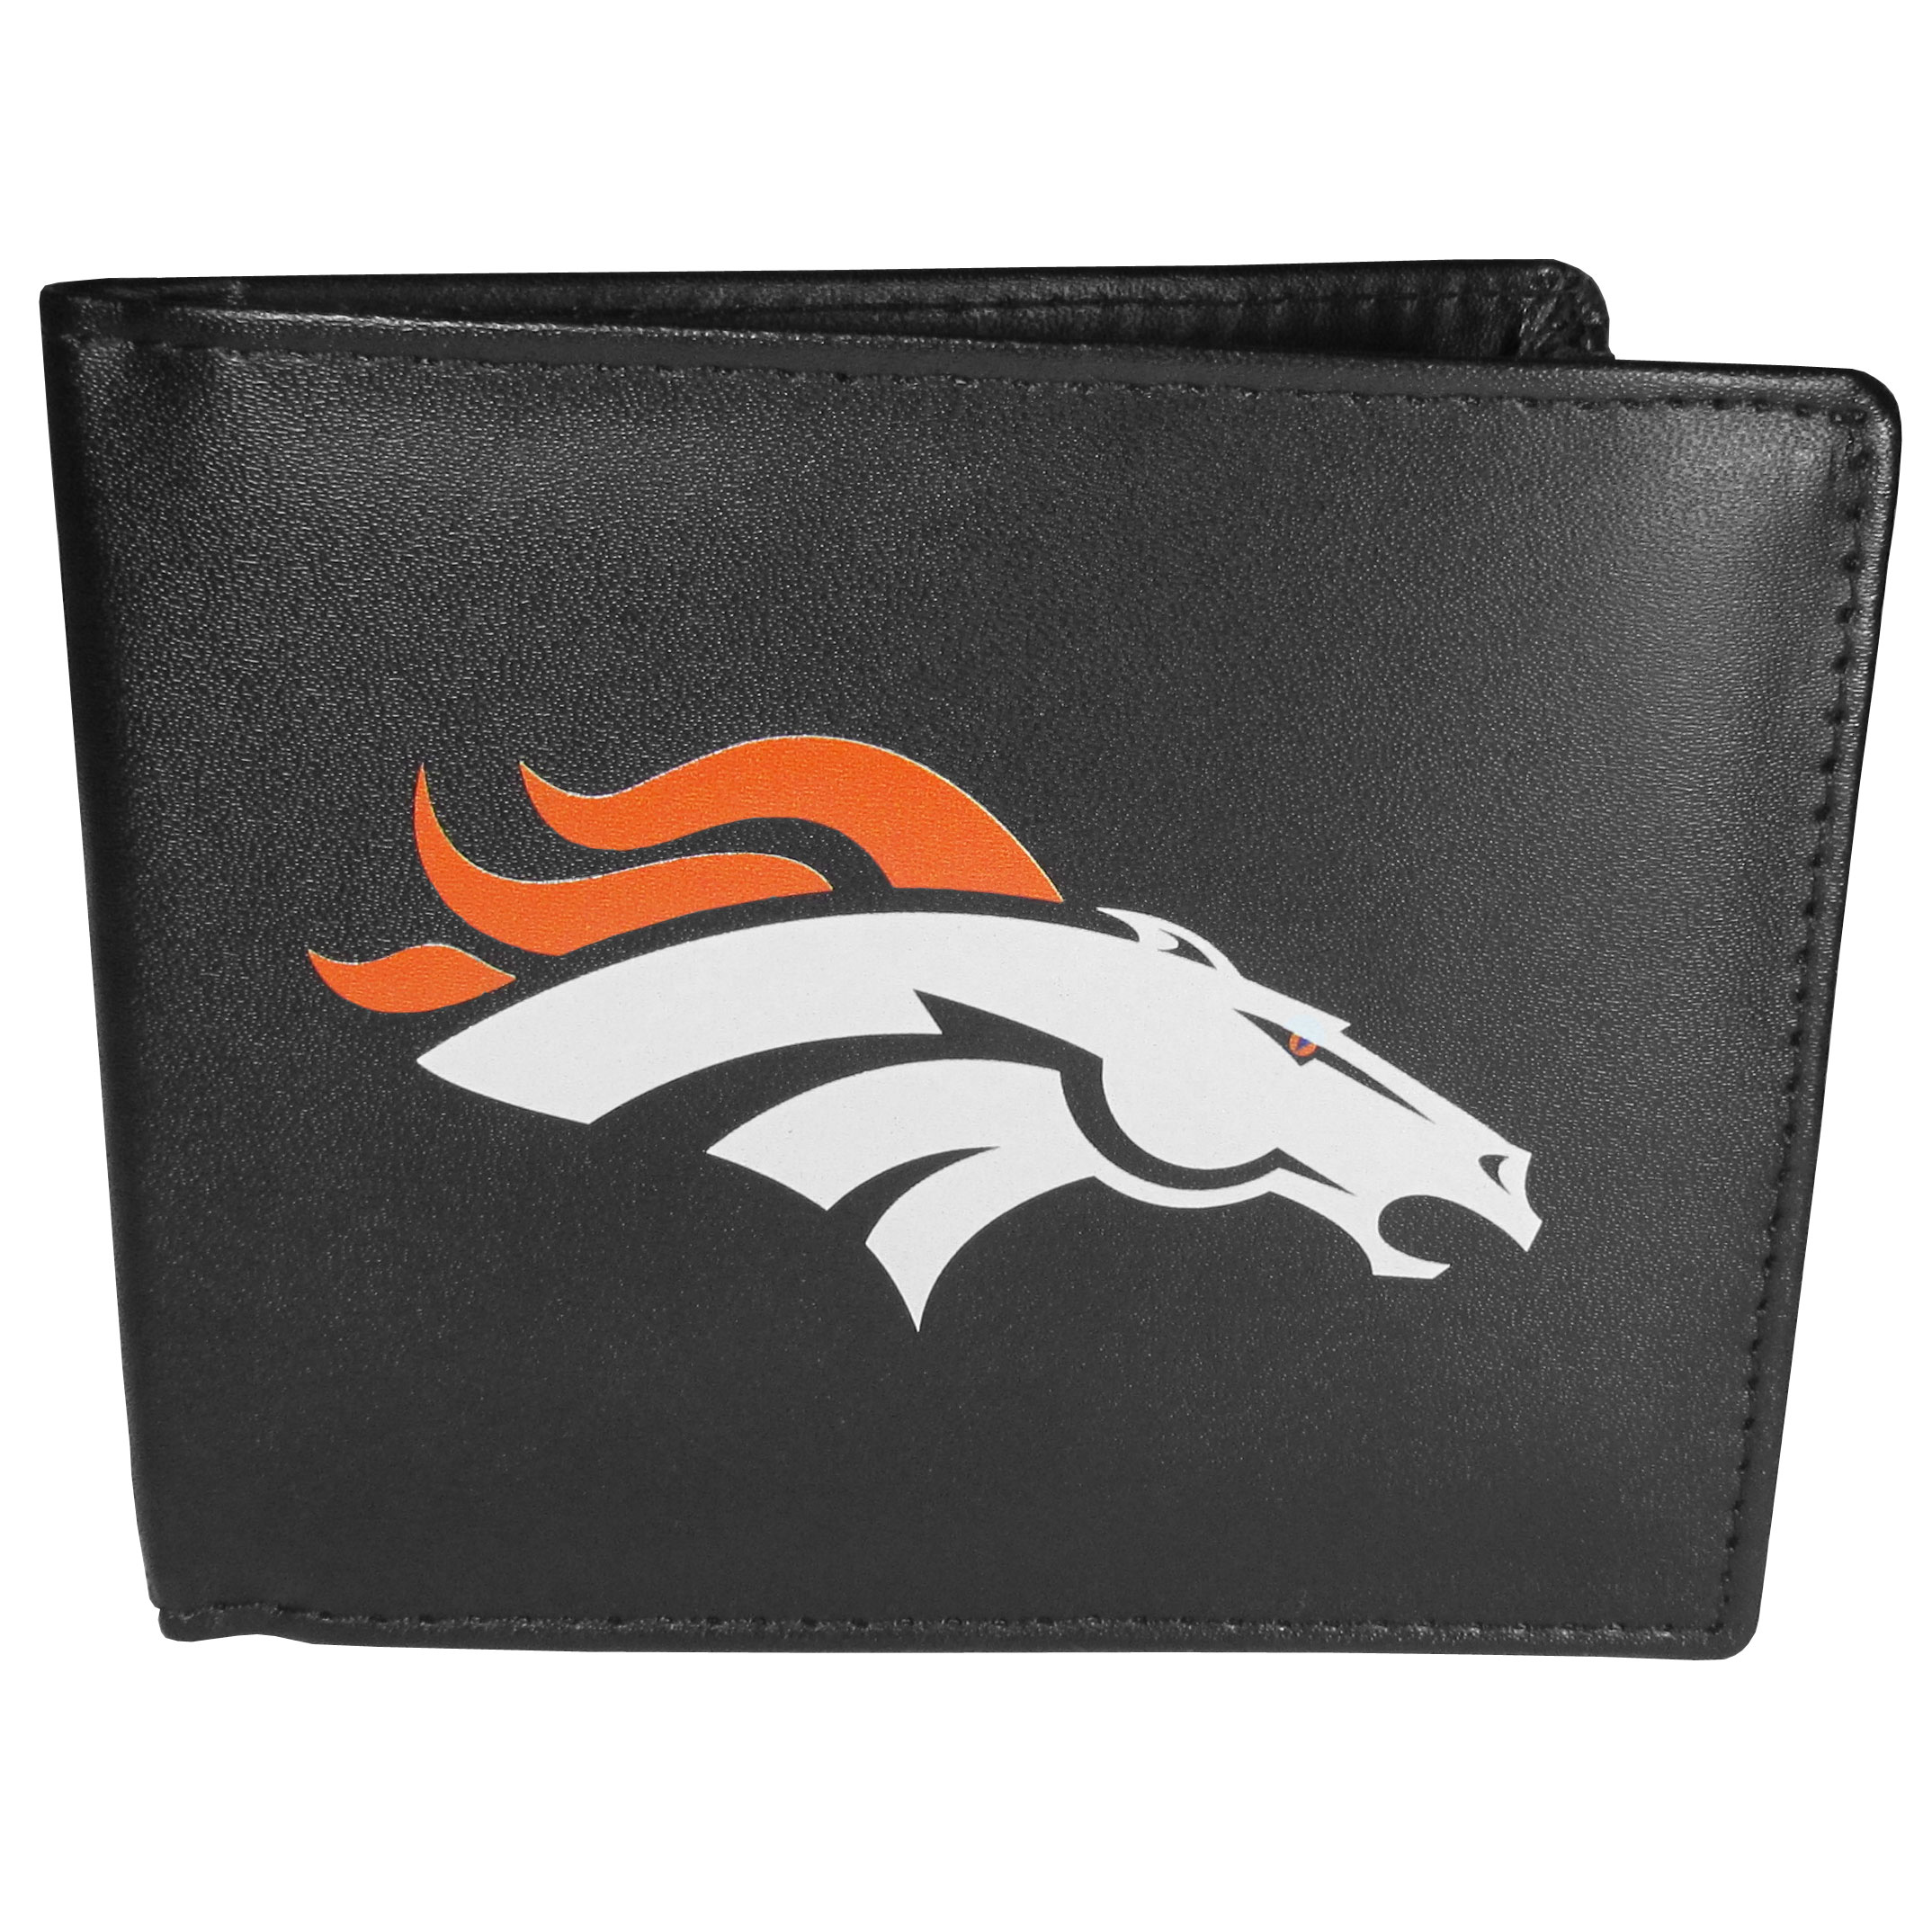 Denver Broncos Bi-fold Wallet Large Logo - Sports fans do not have to sacrifice style with this classic bi-fold wallet that sports the Denver Broncos extra large logo. This men's fashion accessory has a leather grain look and expert craftmanship for a quality wallet at a great price. The wallet features inner credit card slots, windowed ID slot and a large billfold pocket. The front of the wallet features a printed team logo.